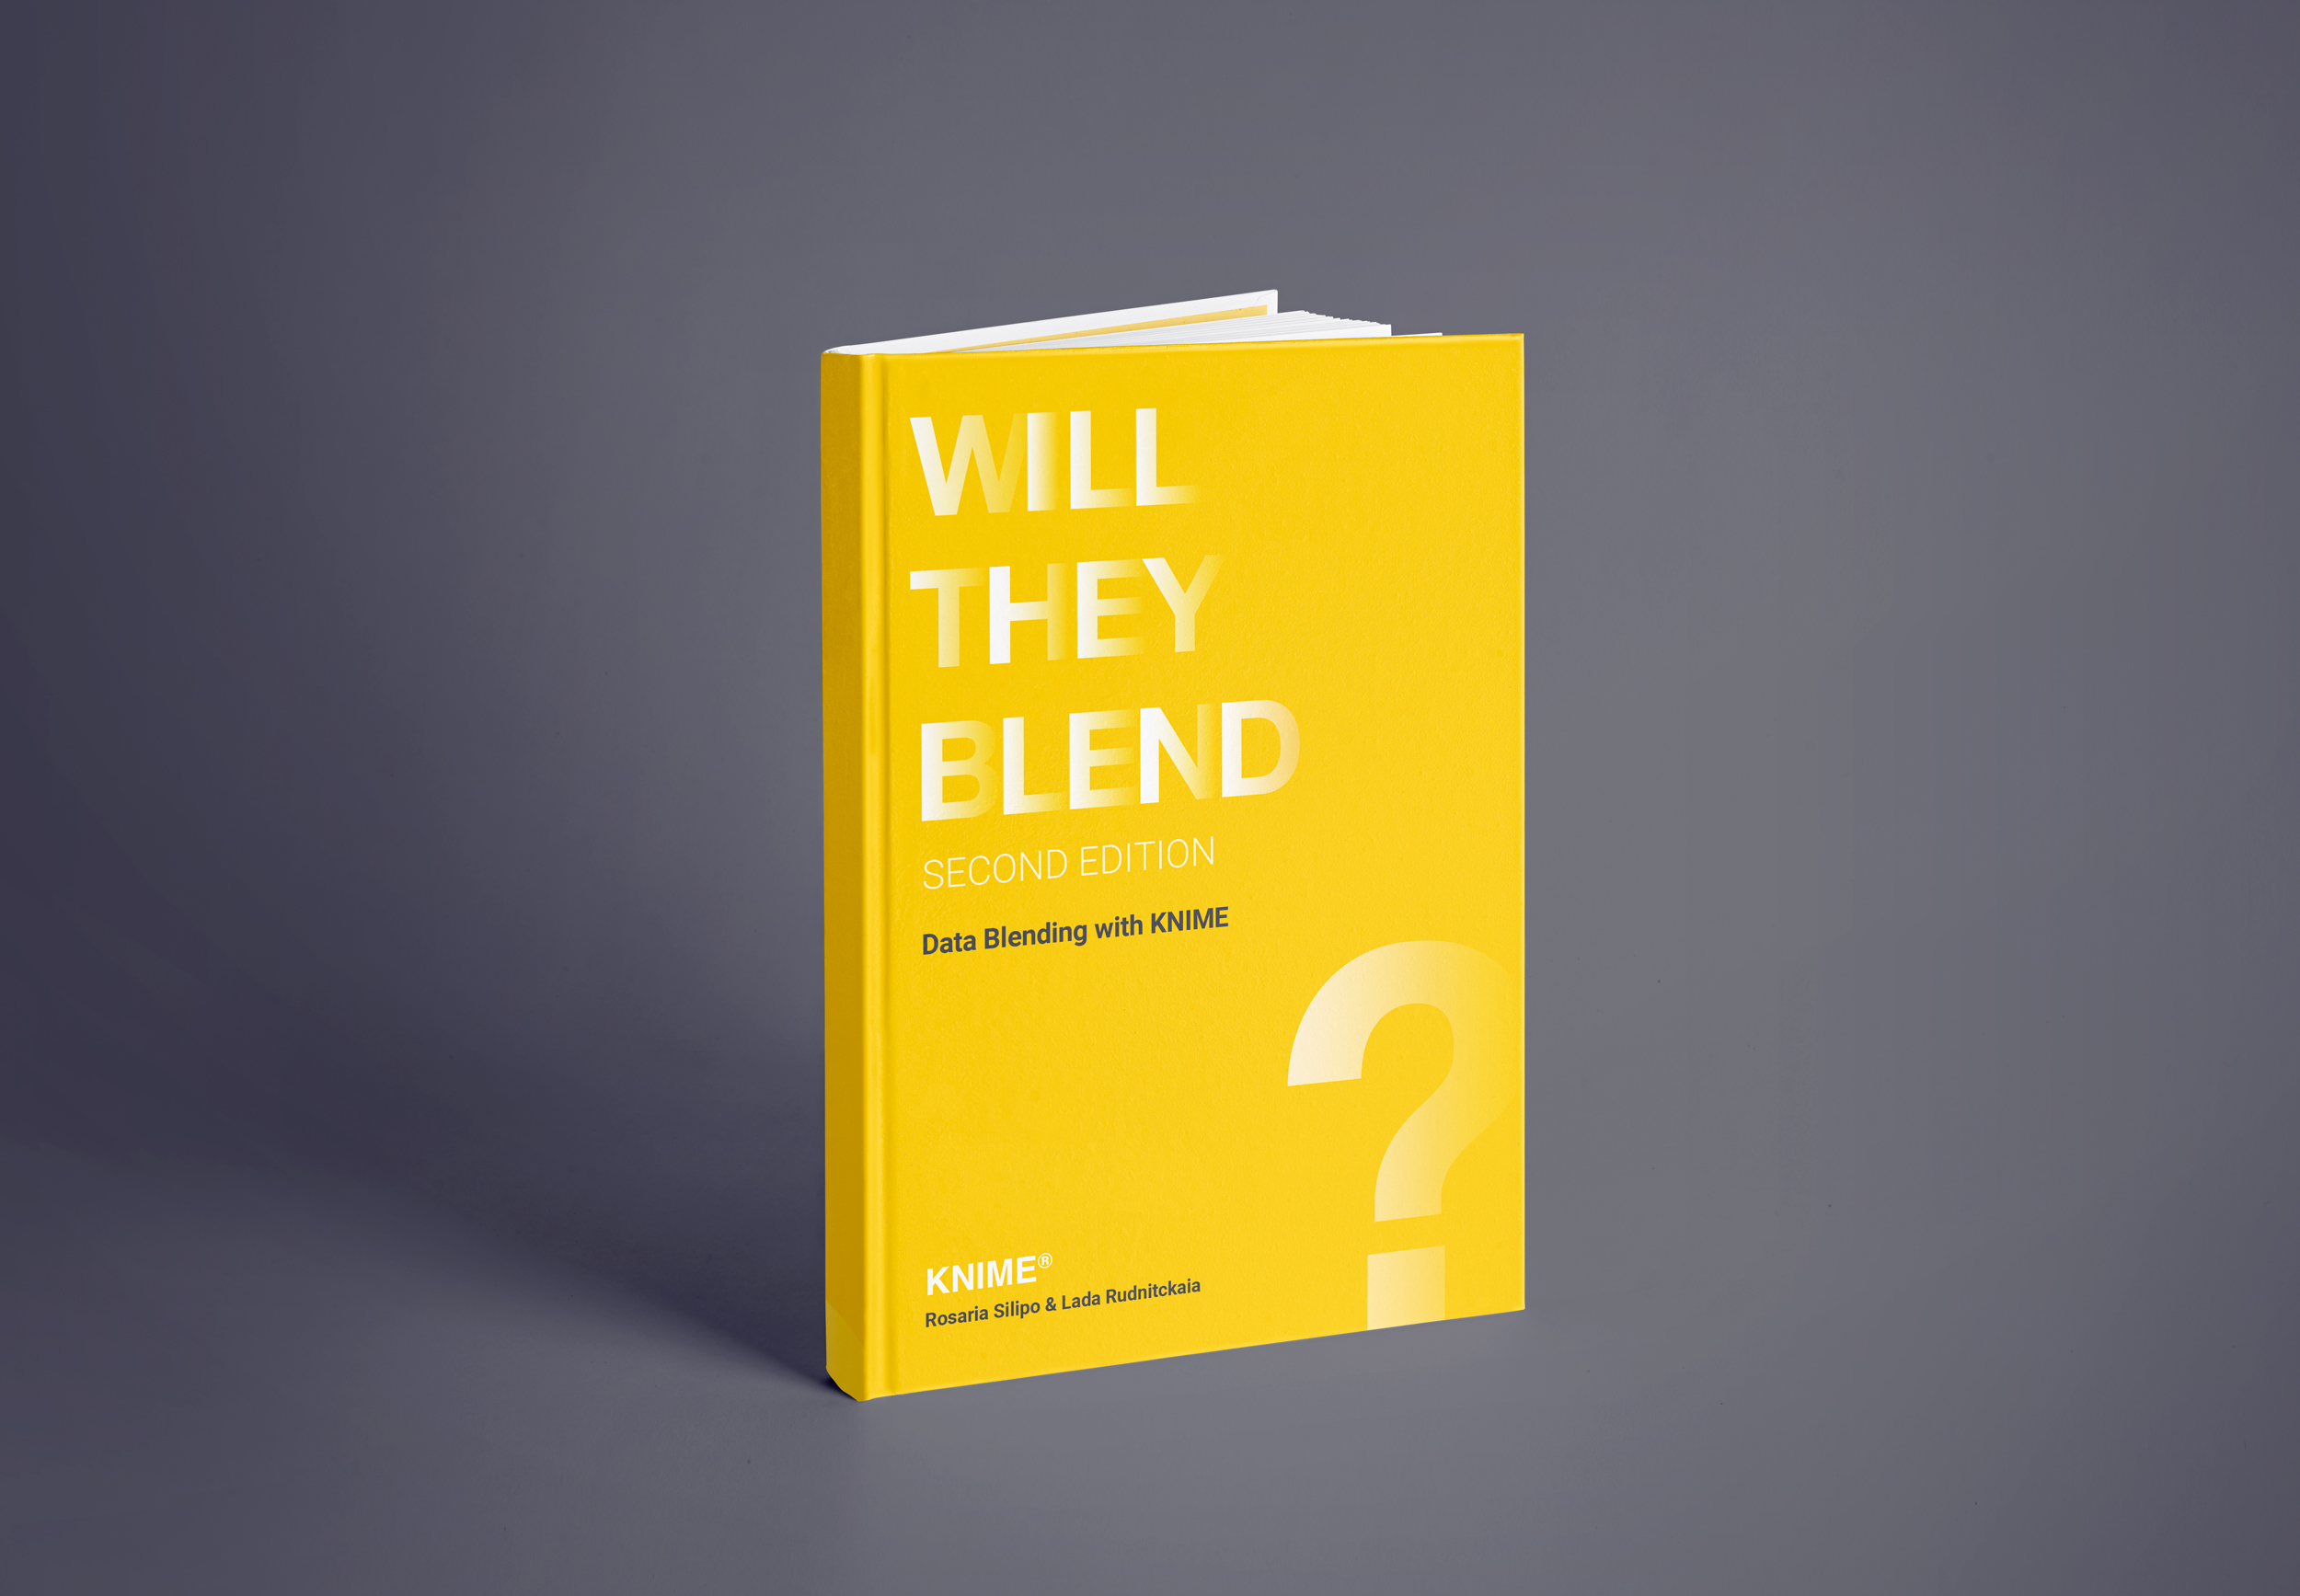 Will They Blend - Data Blending with KNIME